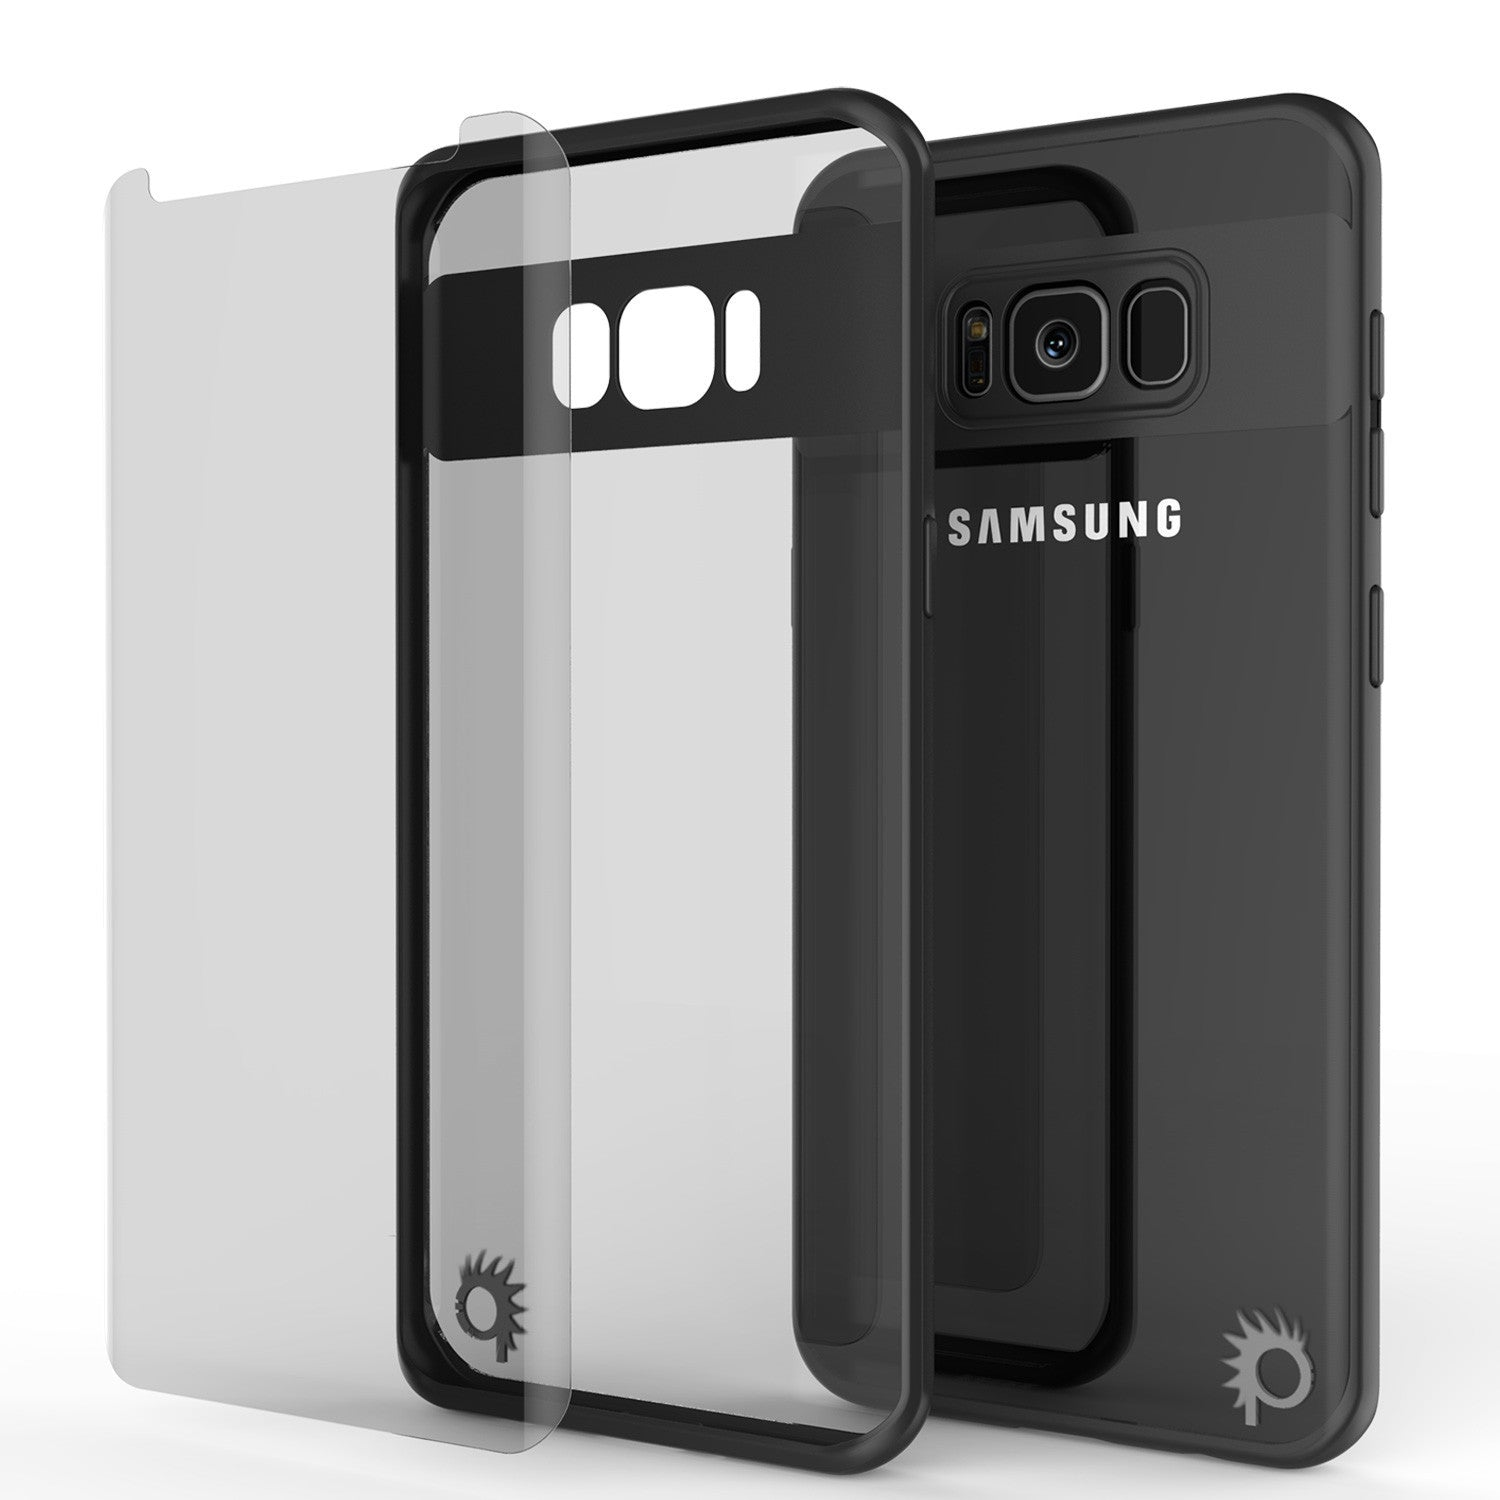 Galaxy S8 Case, Punkcase [MASK Series] [BLACK] Full Body Hybrid Dual Layer TPU Cover W/ Protective PUNKSHIELD Screen Protector